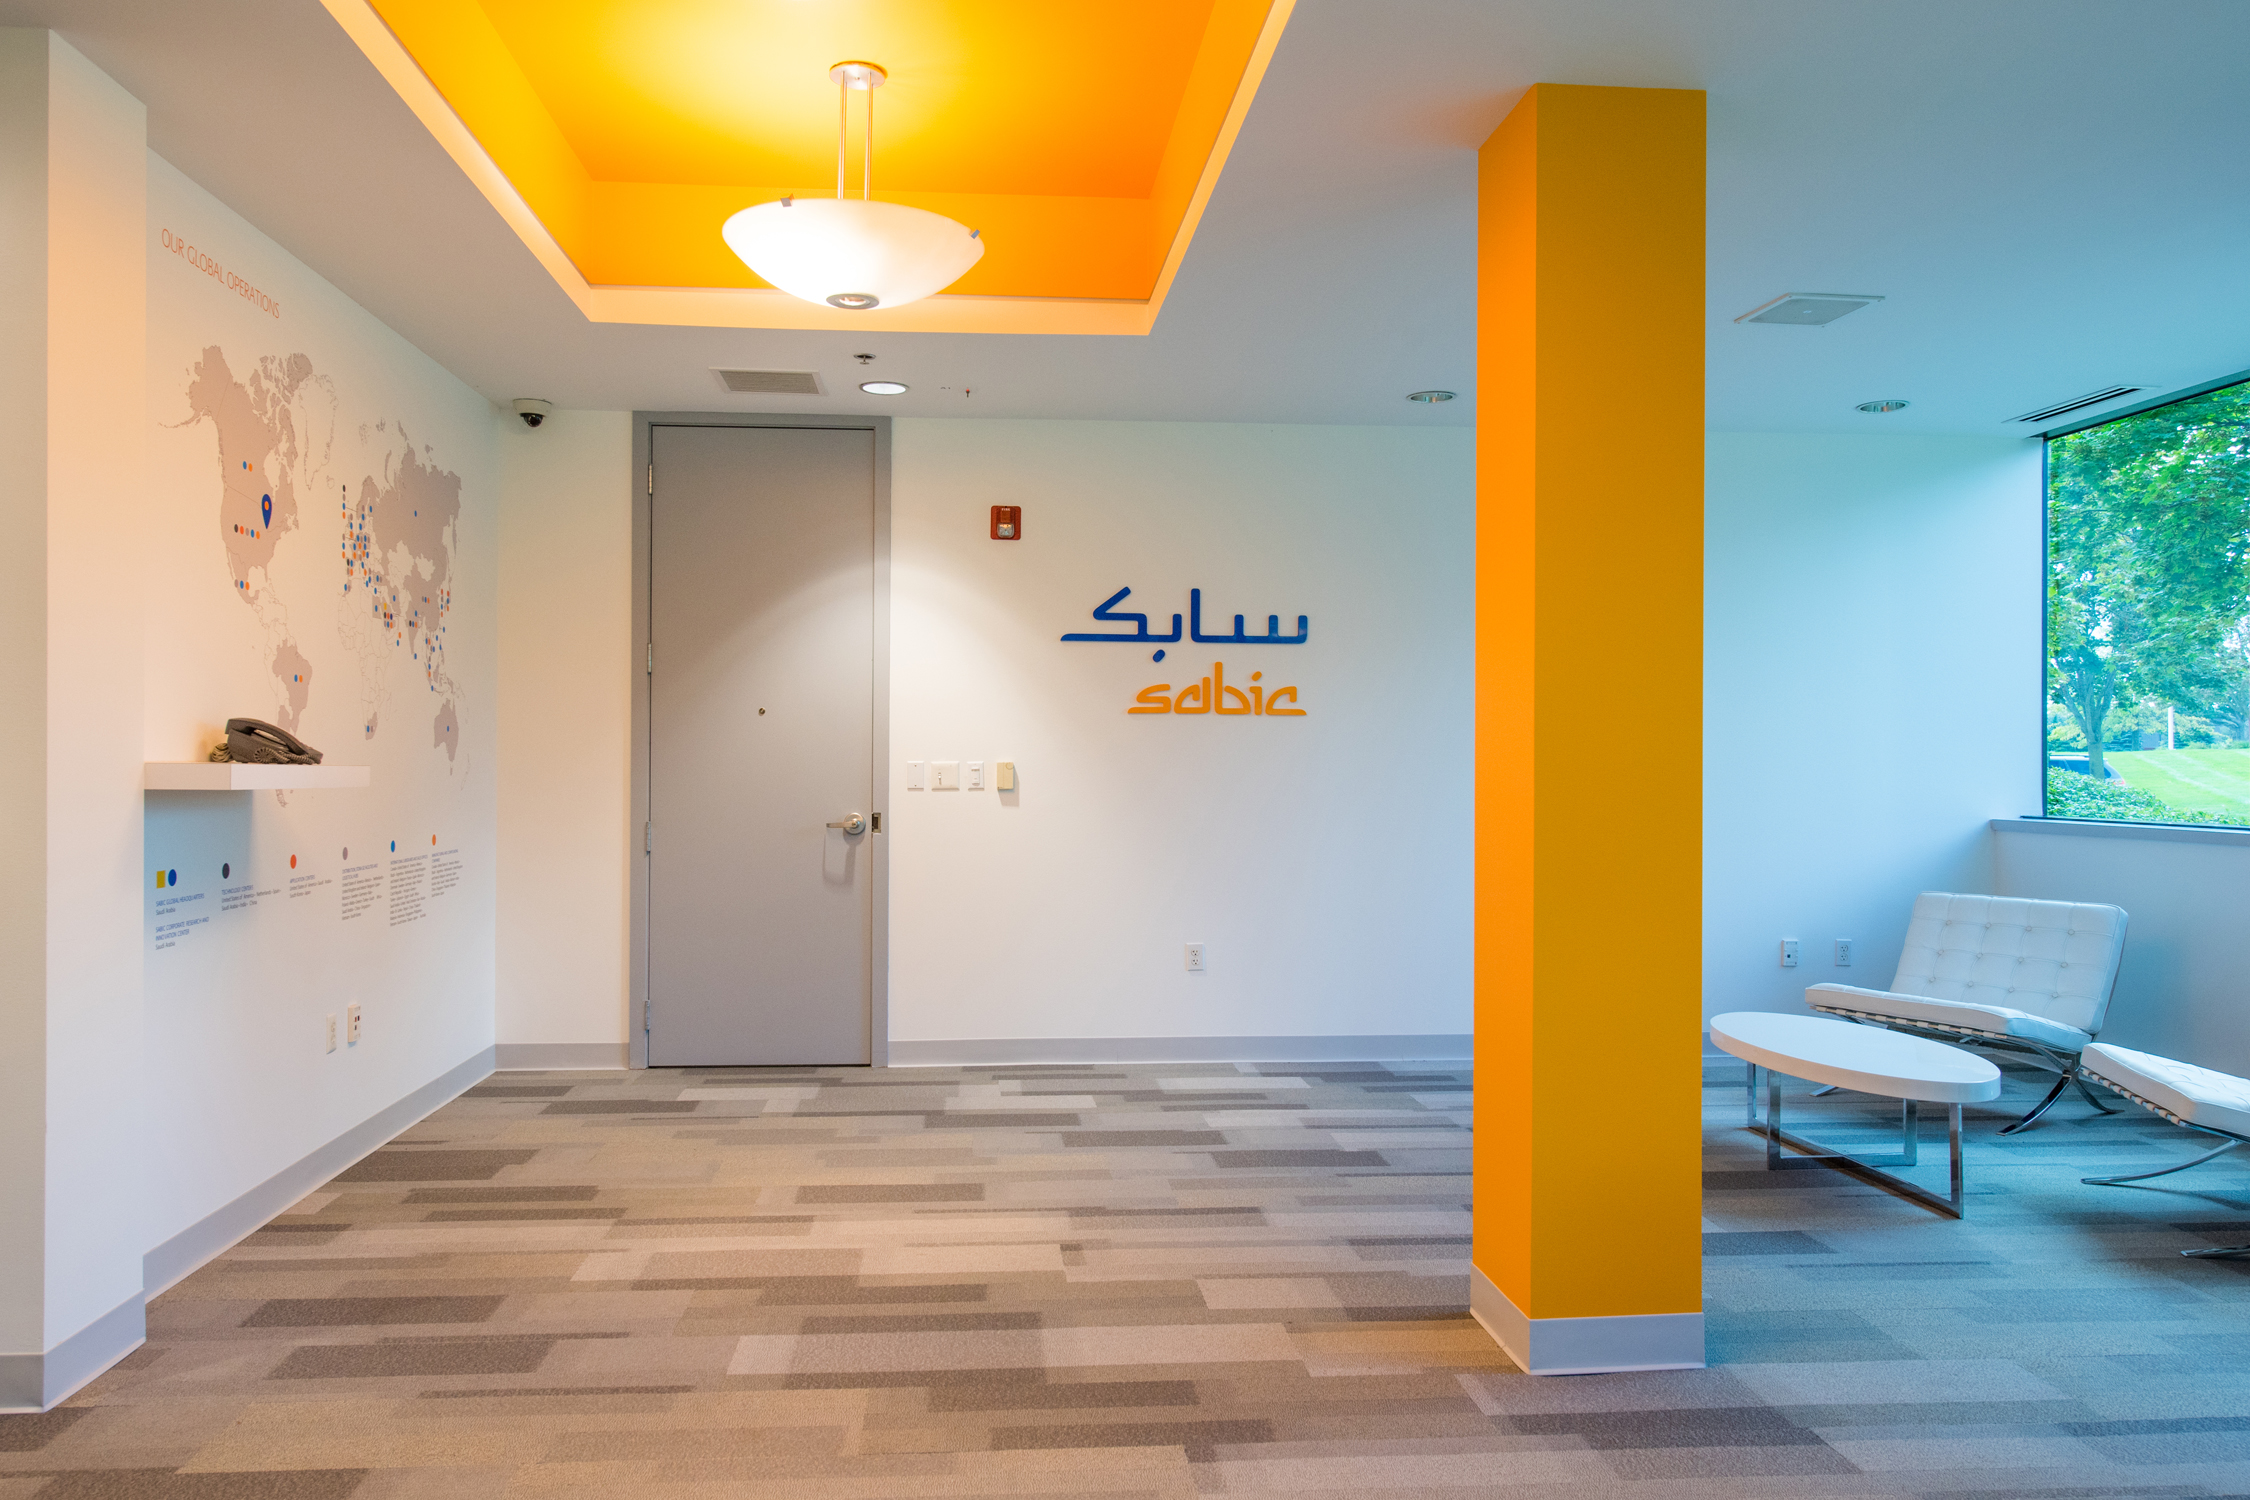 Sabic corporate office lobby interior design.jpg